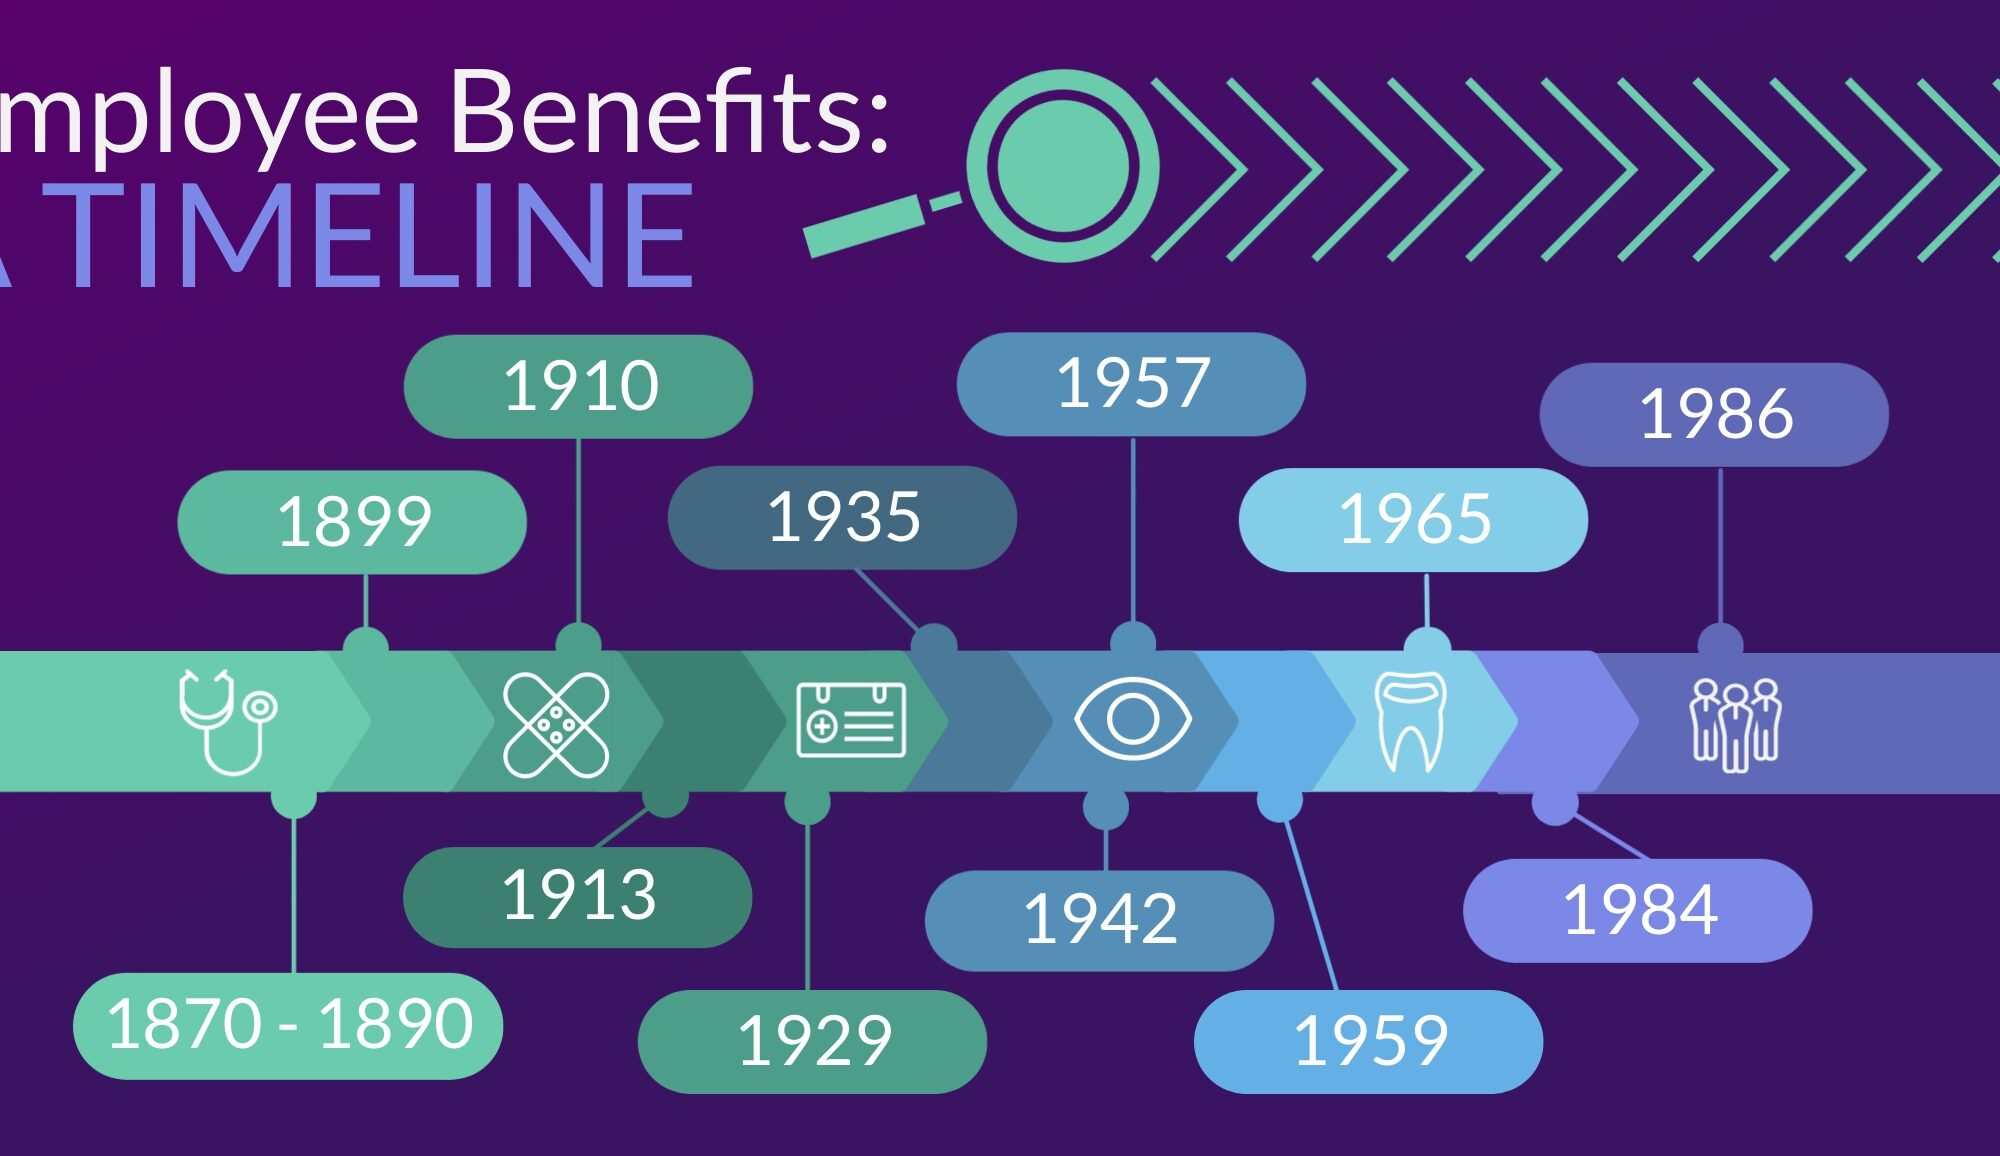 Employee Benefits Timeline